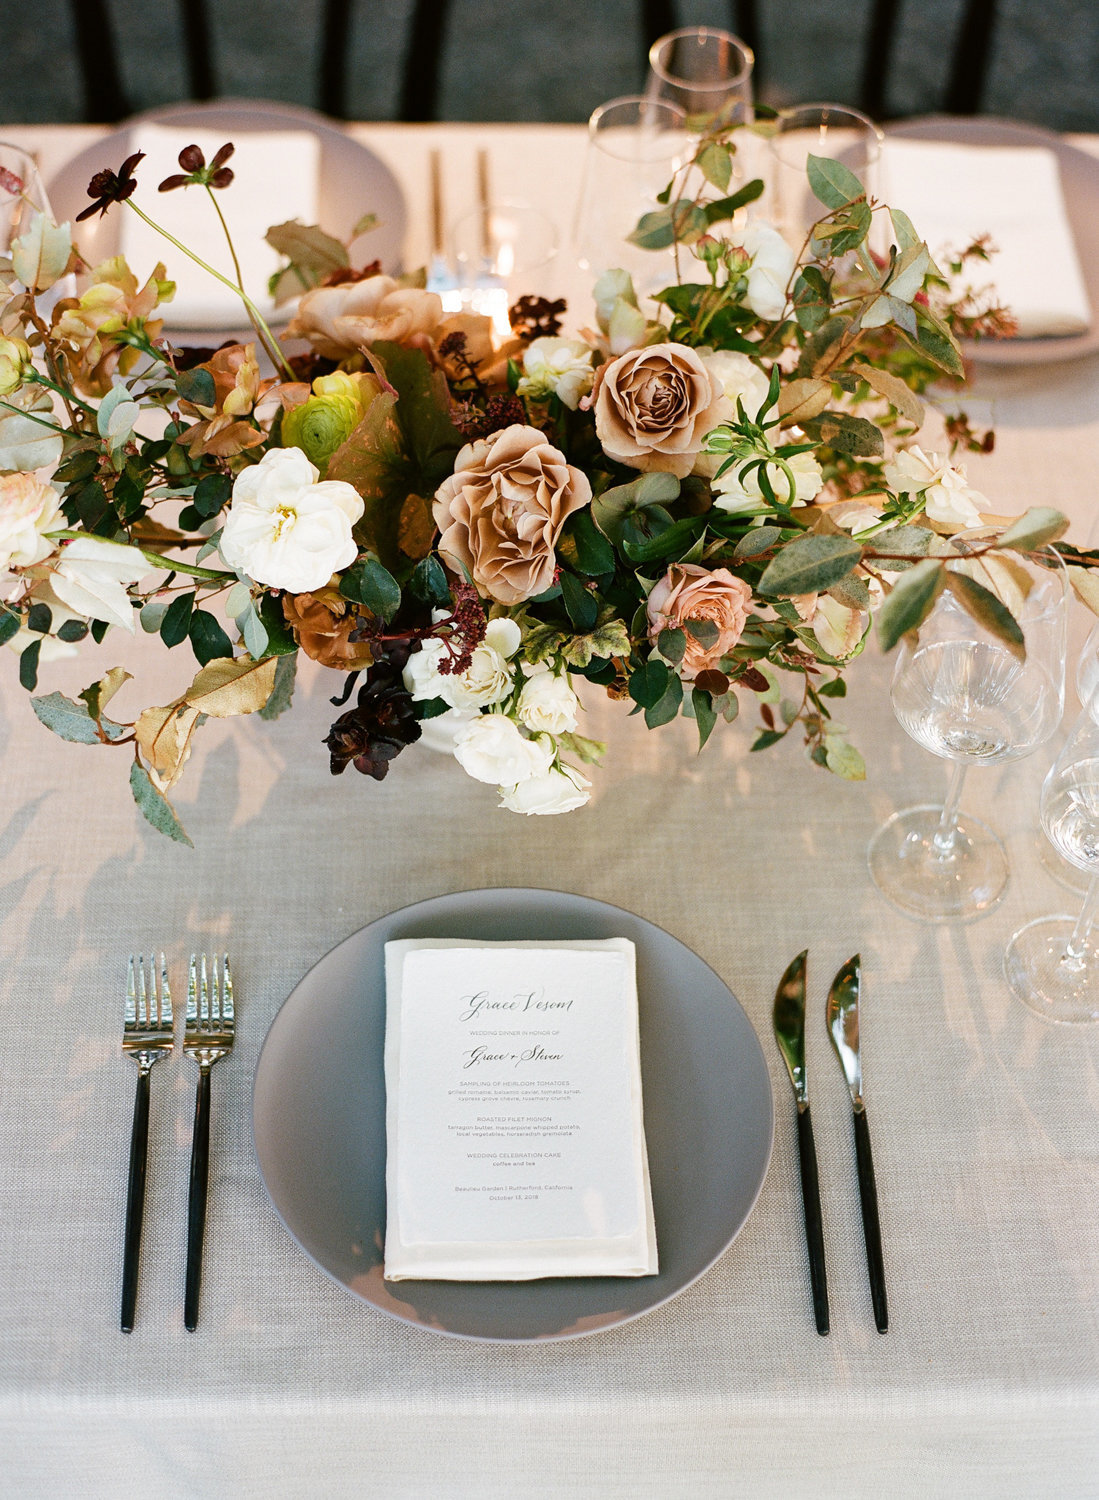 Tablescape for wedding by Jenny Schneider Events at the Beaulieu Garden in Napa Valley, California. Photo by Lori Paladino Photography.